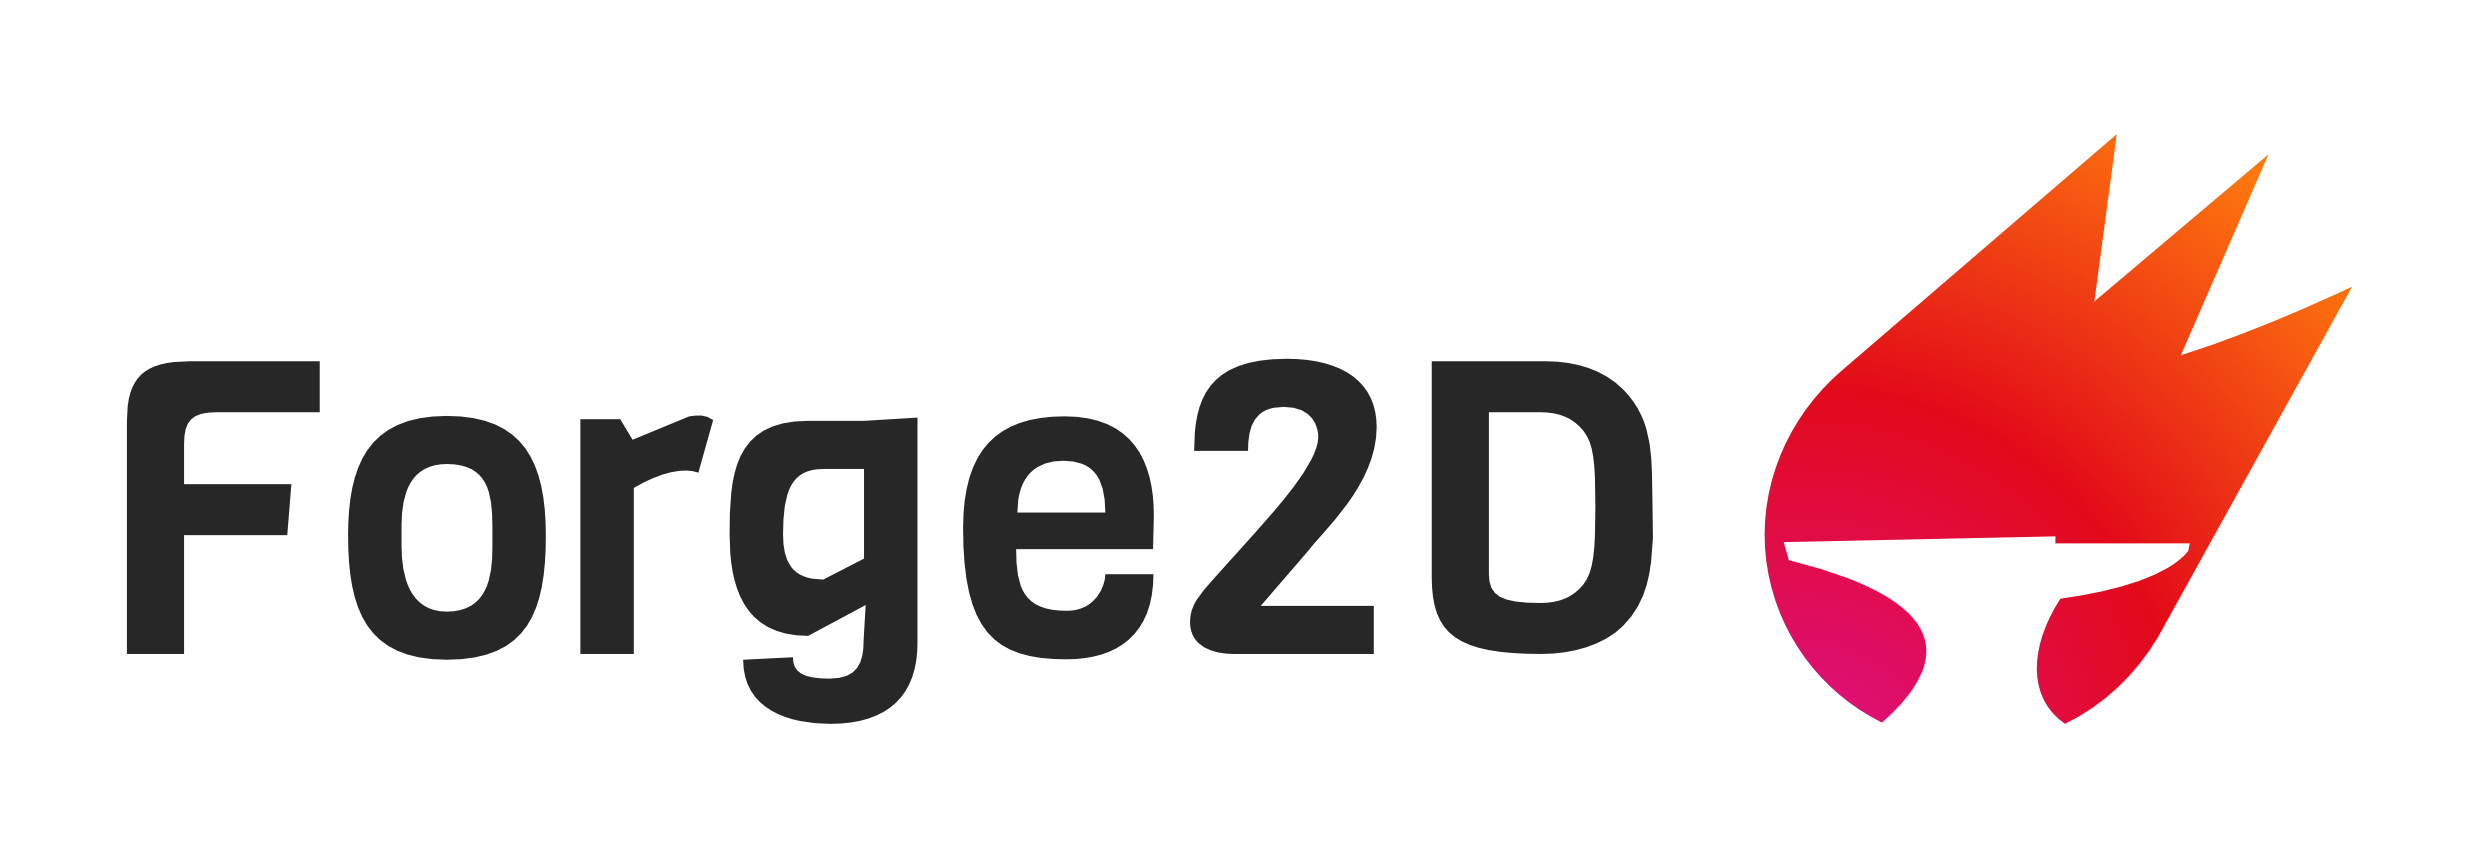 Forge2D